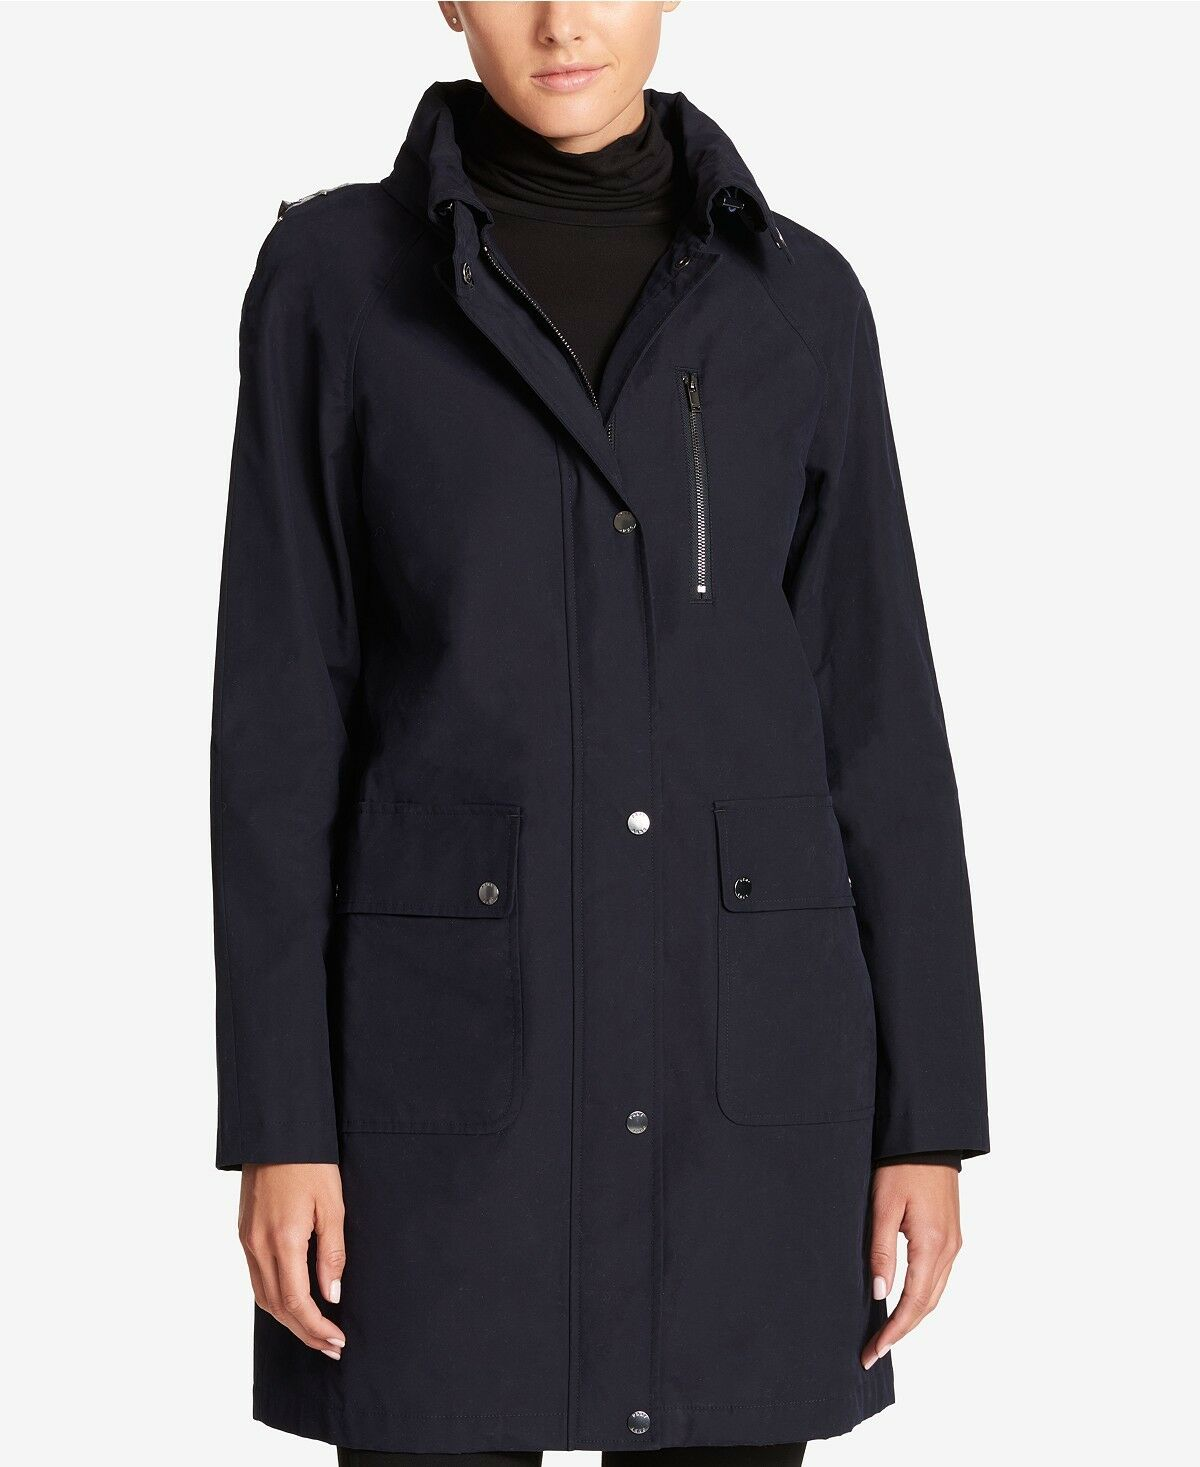 DKNY Hooded Water-Resistant Cotton-Blend Raincoat Navy XS